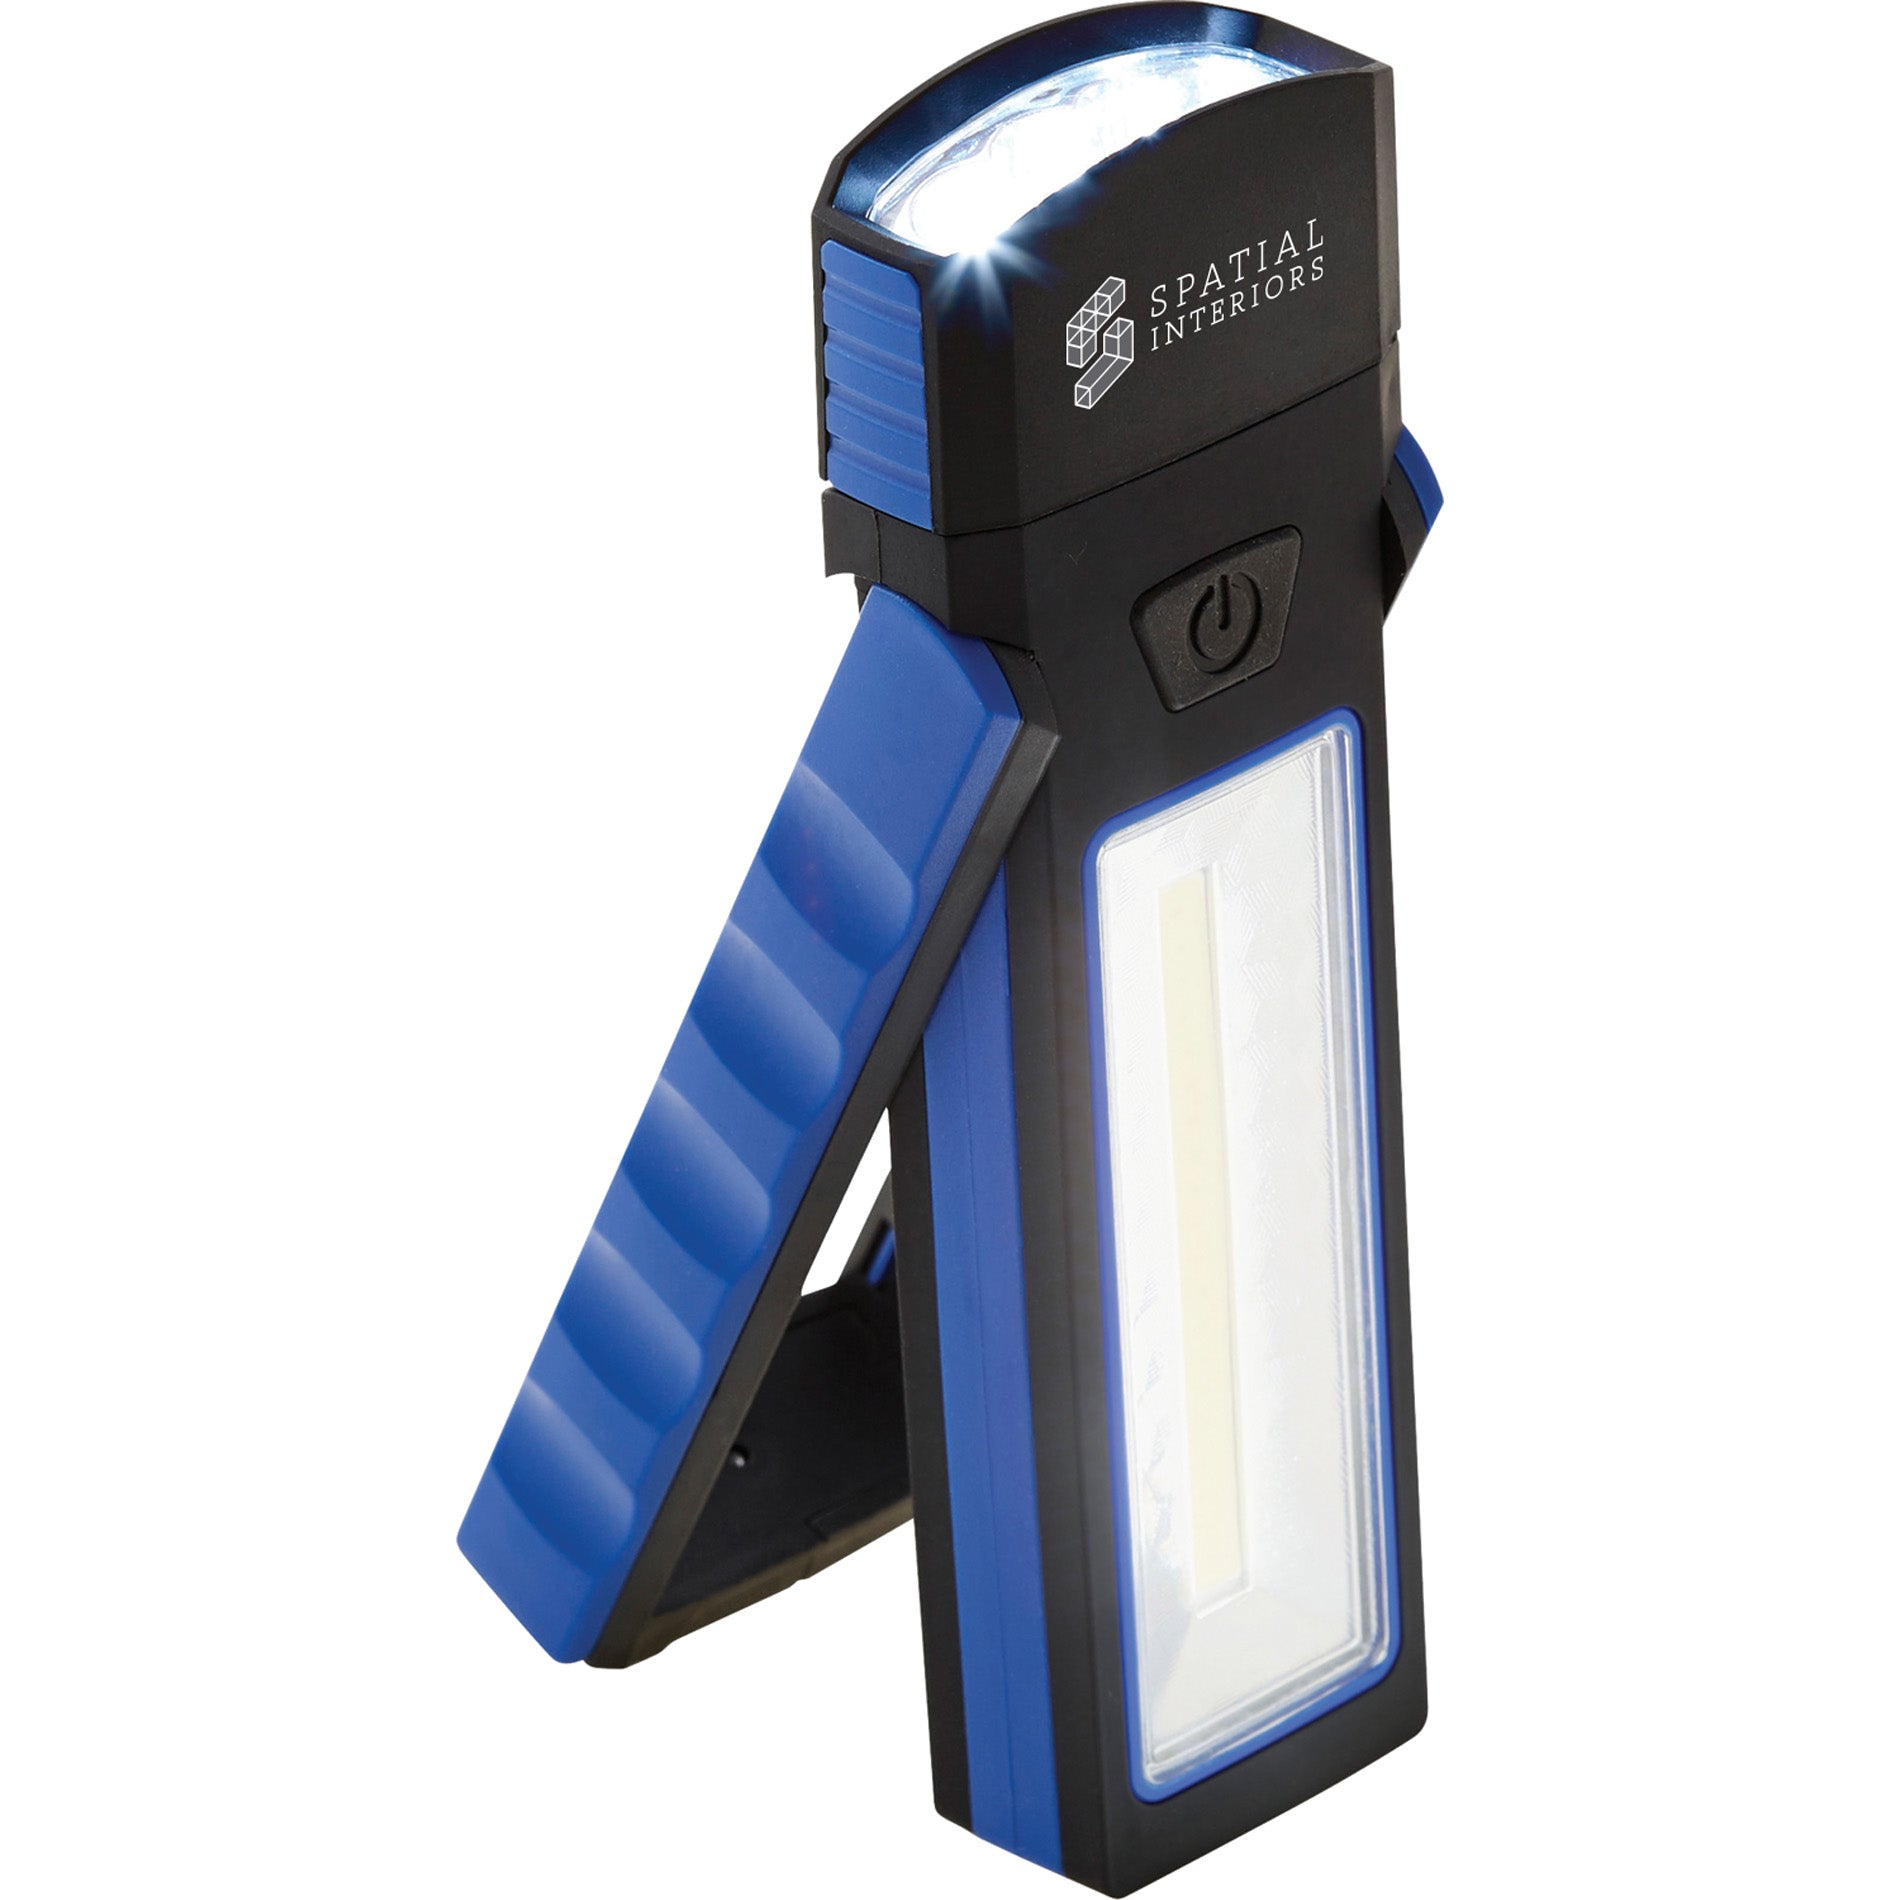 LEEDS COB MAGNETIC WORKLIGHT WITH TORCH AND STAND